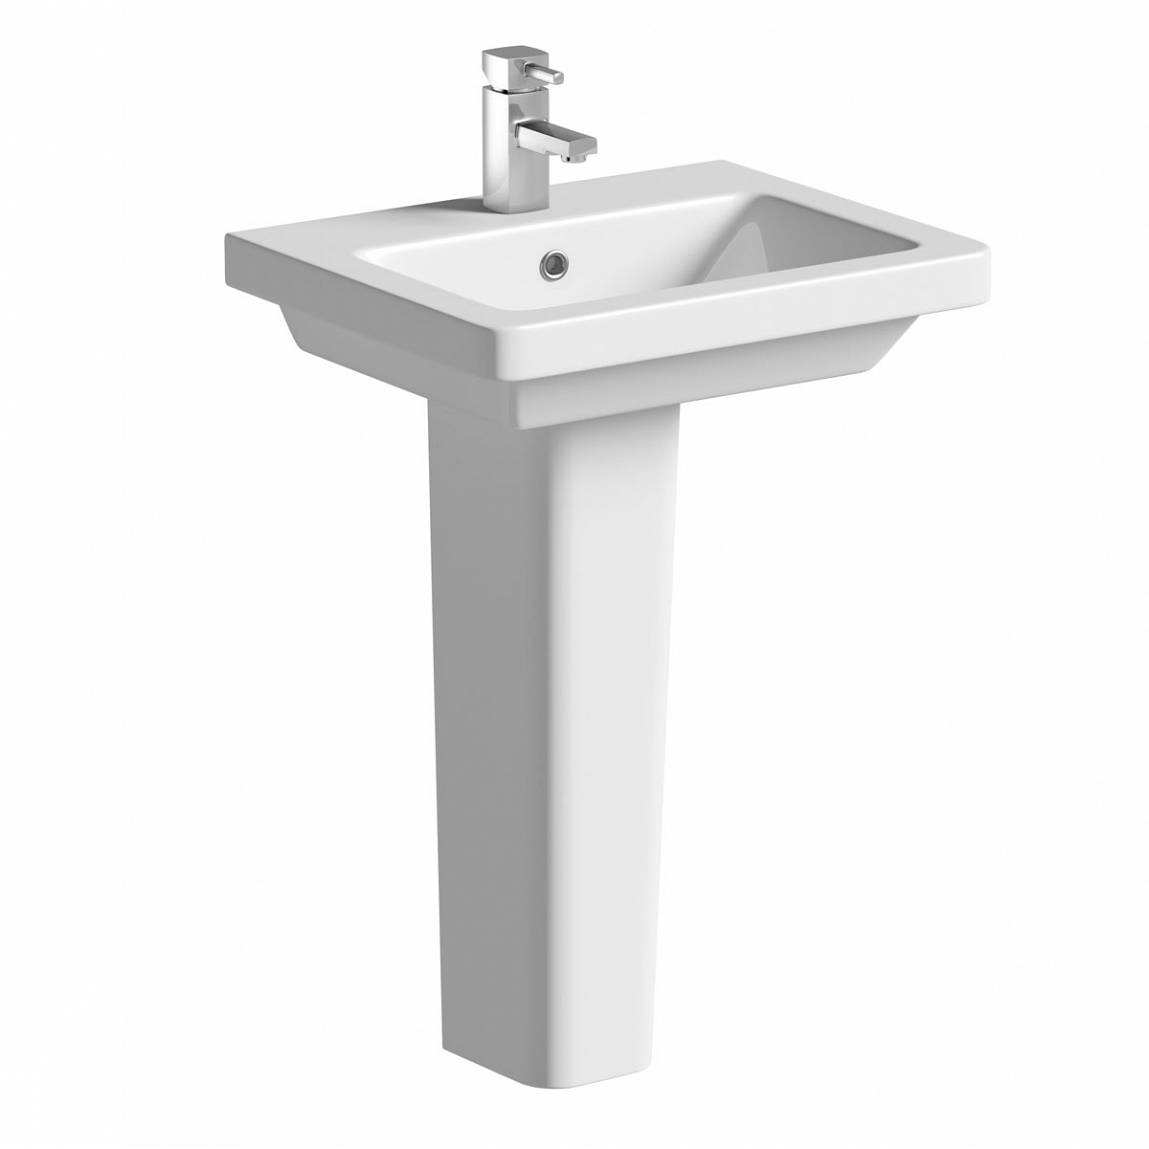 Image of Verso 1TH 550mm Basin & Pedestal